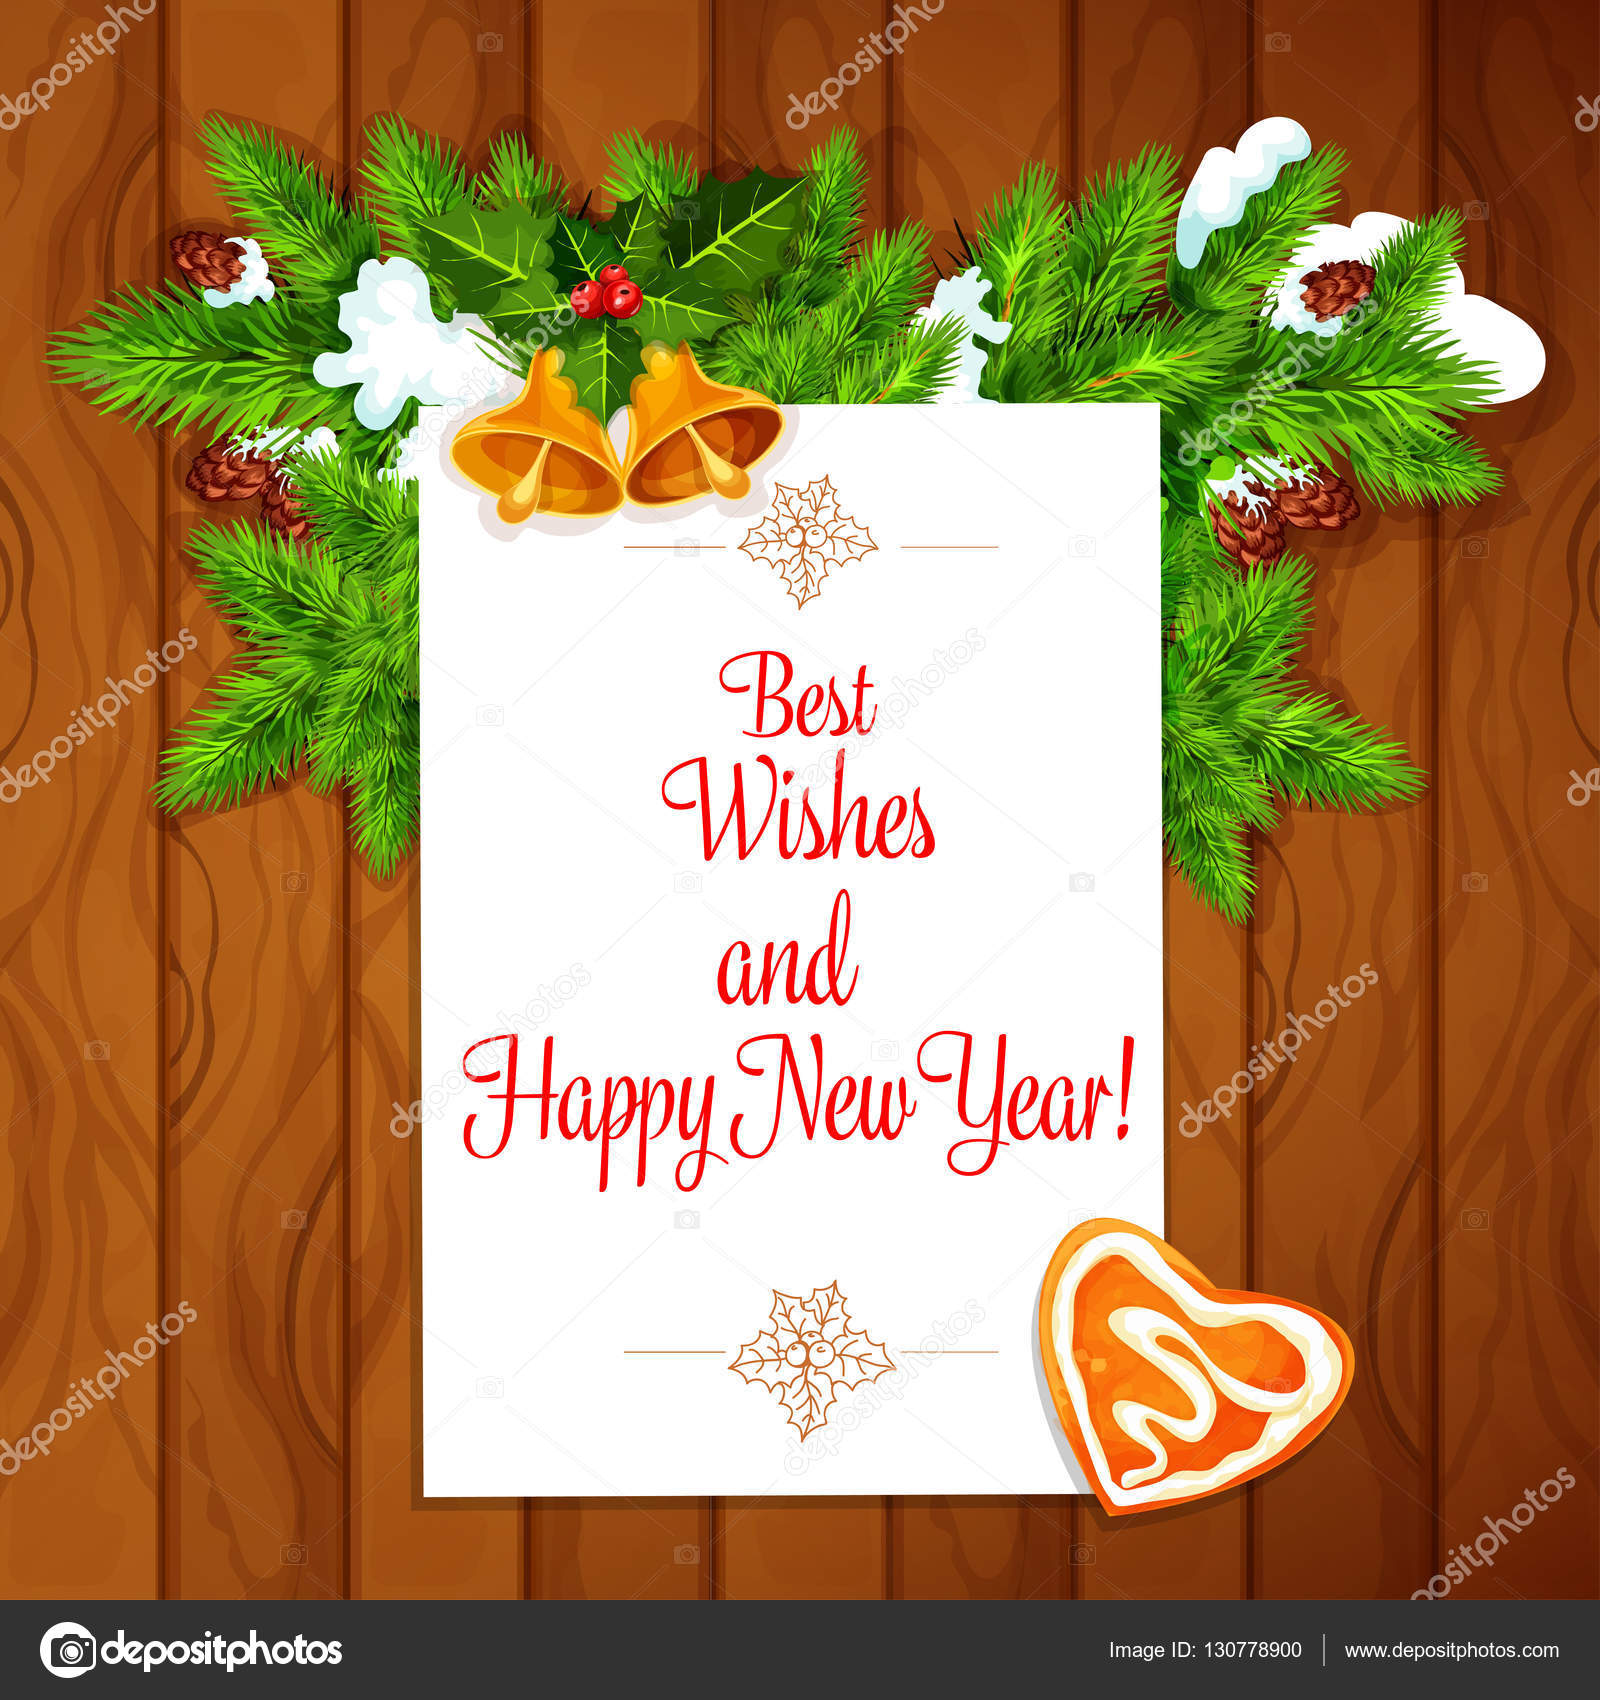 New year best wishes vector poster stock vector seamartini new year best wishes vector poster stock vector 130778900 kristyandbryce Image collections